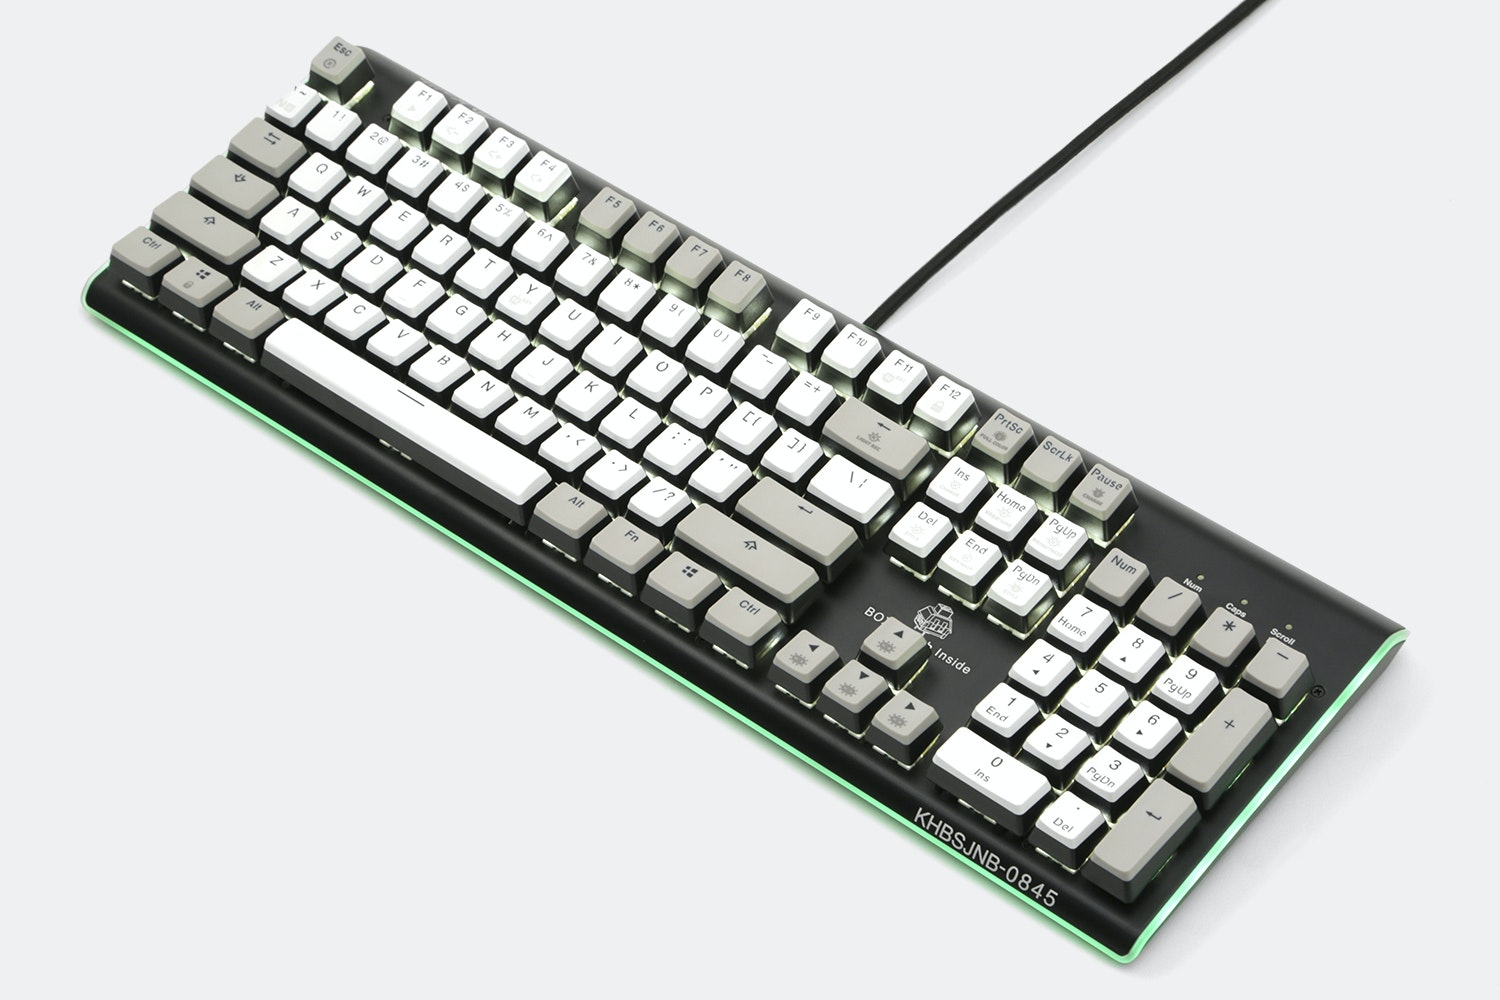 Kailh Box Switch Commemorative Keyboard